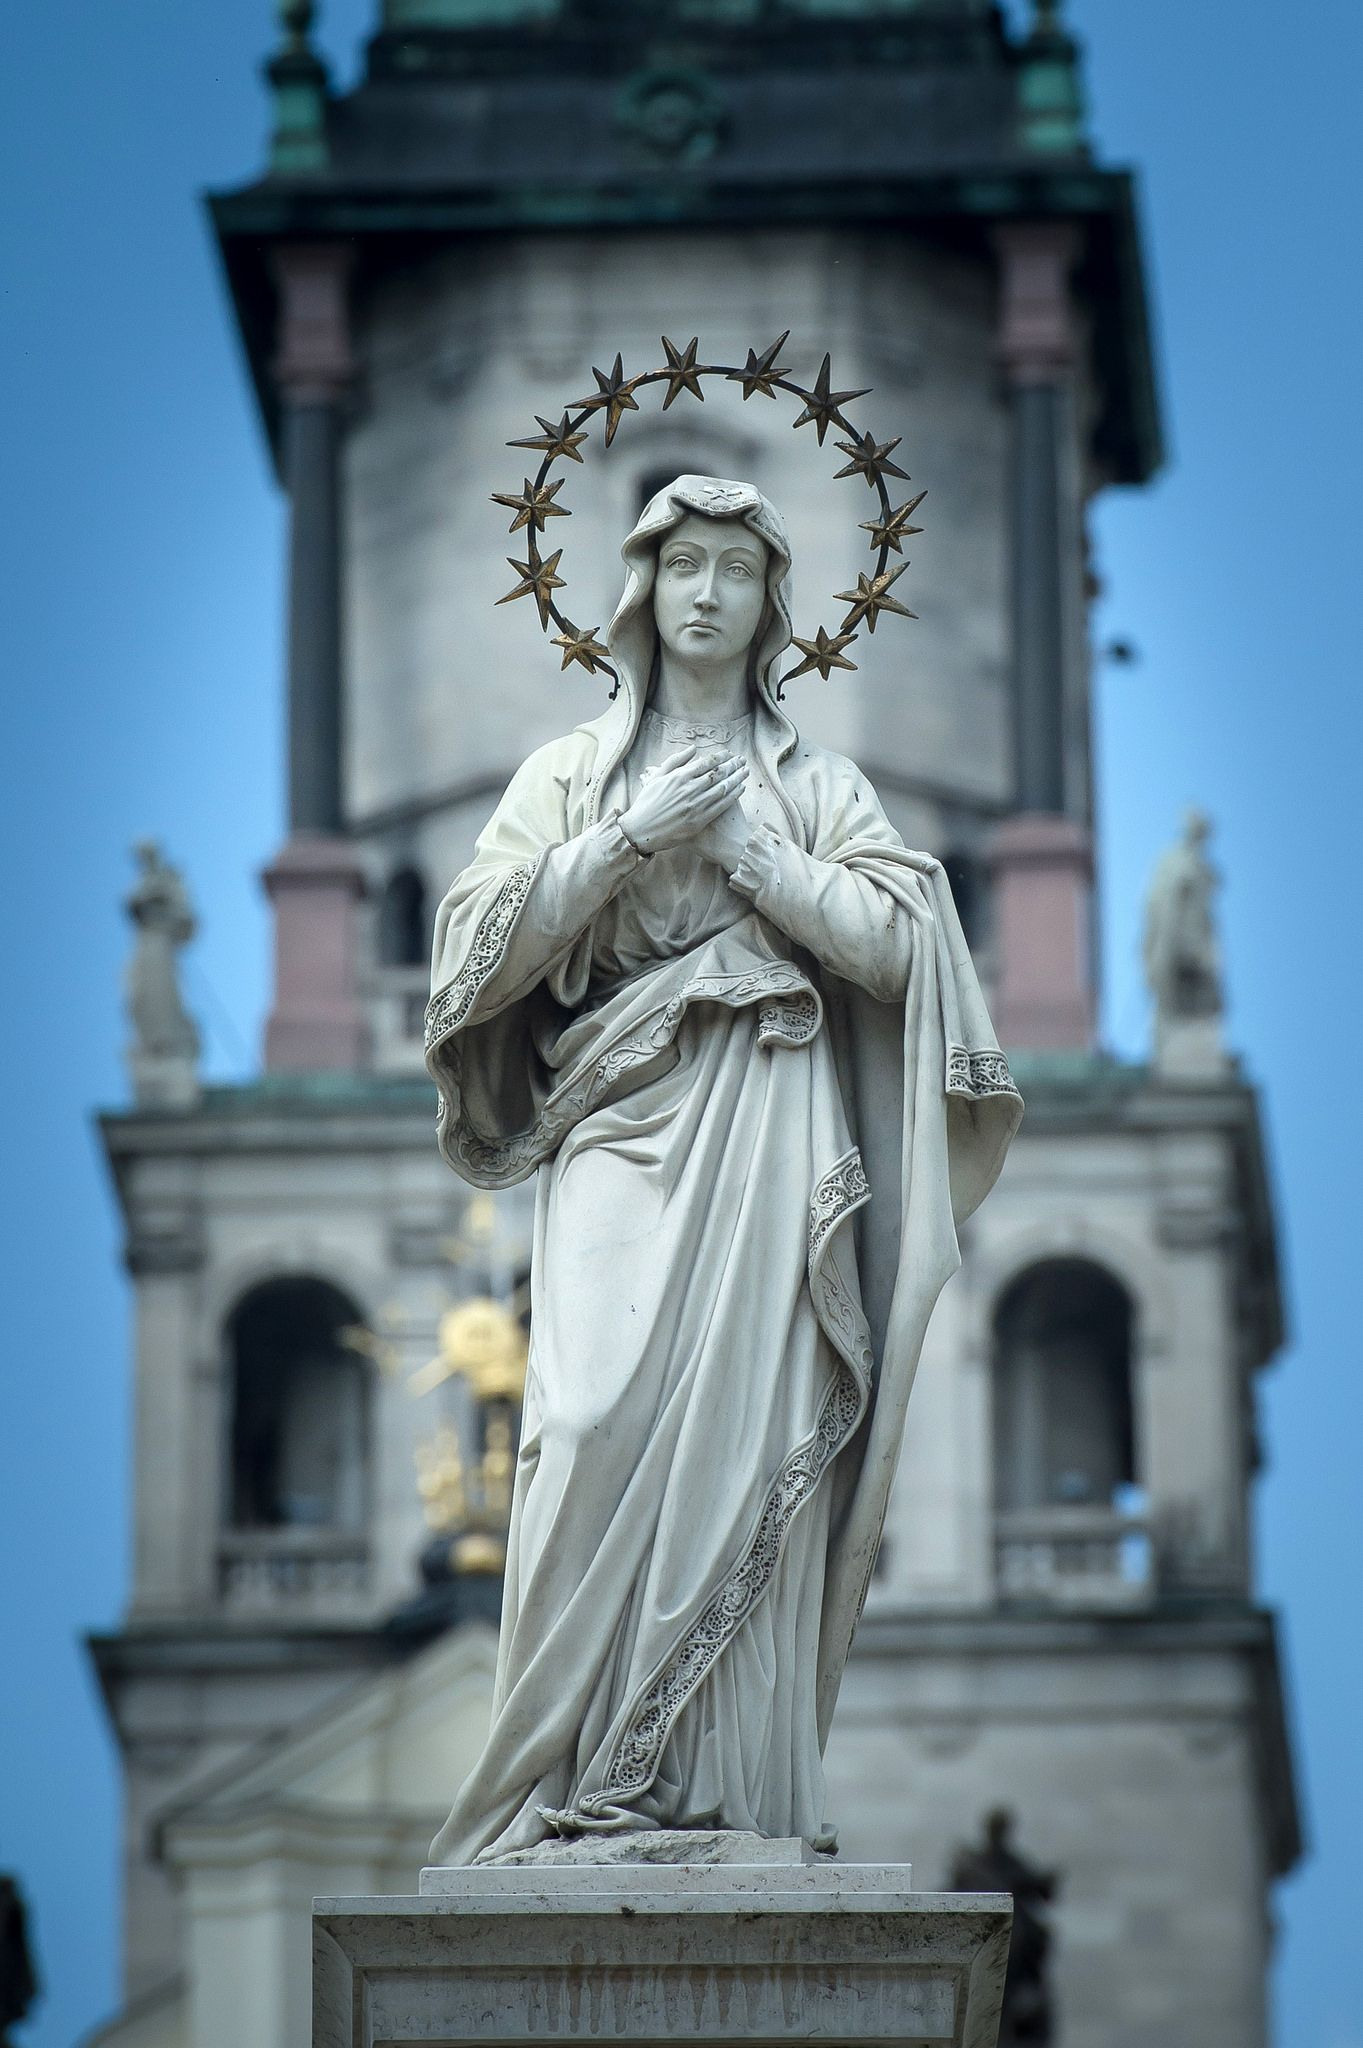 https://flic.kr/p/HWLVVt | Jasna Góra Monastery in Częstochowa | The Jasna Góra Monastery in Częstochowa, Poland, is a famous Polish shrine to the Virgin Mary and one of the country's places of pilgrimage for many the monastery is a spiritual capital. The image of the Black Madonna of Częstochowa, also known as Our Lady of Częstochowa, to which miraculous powers are attributed, is one of Jasna Góra's most precious treasures. Jasna Góra Monastery was founded in 1382 by Pauline monks who came…